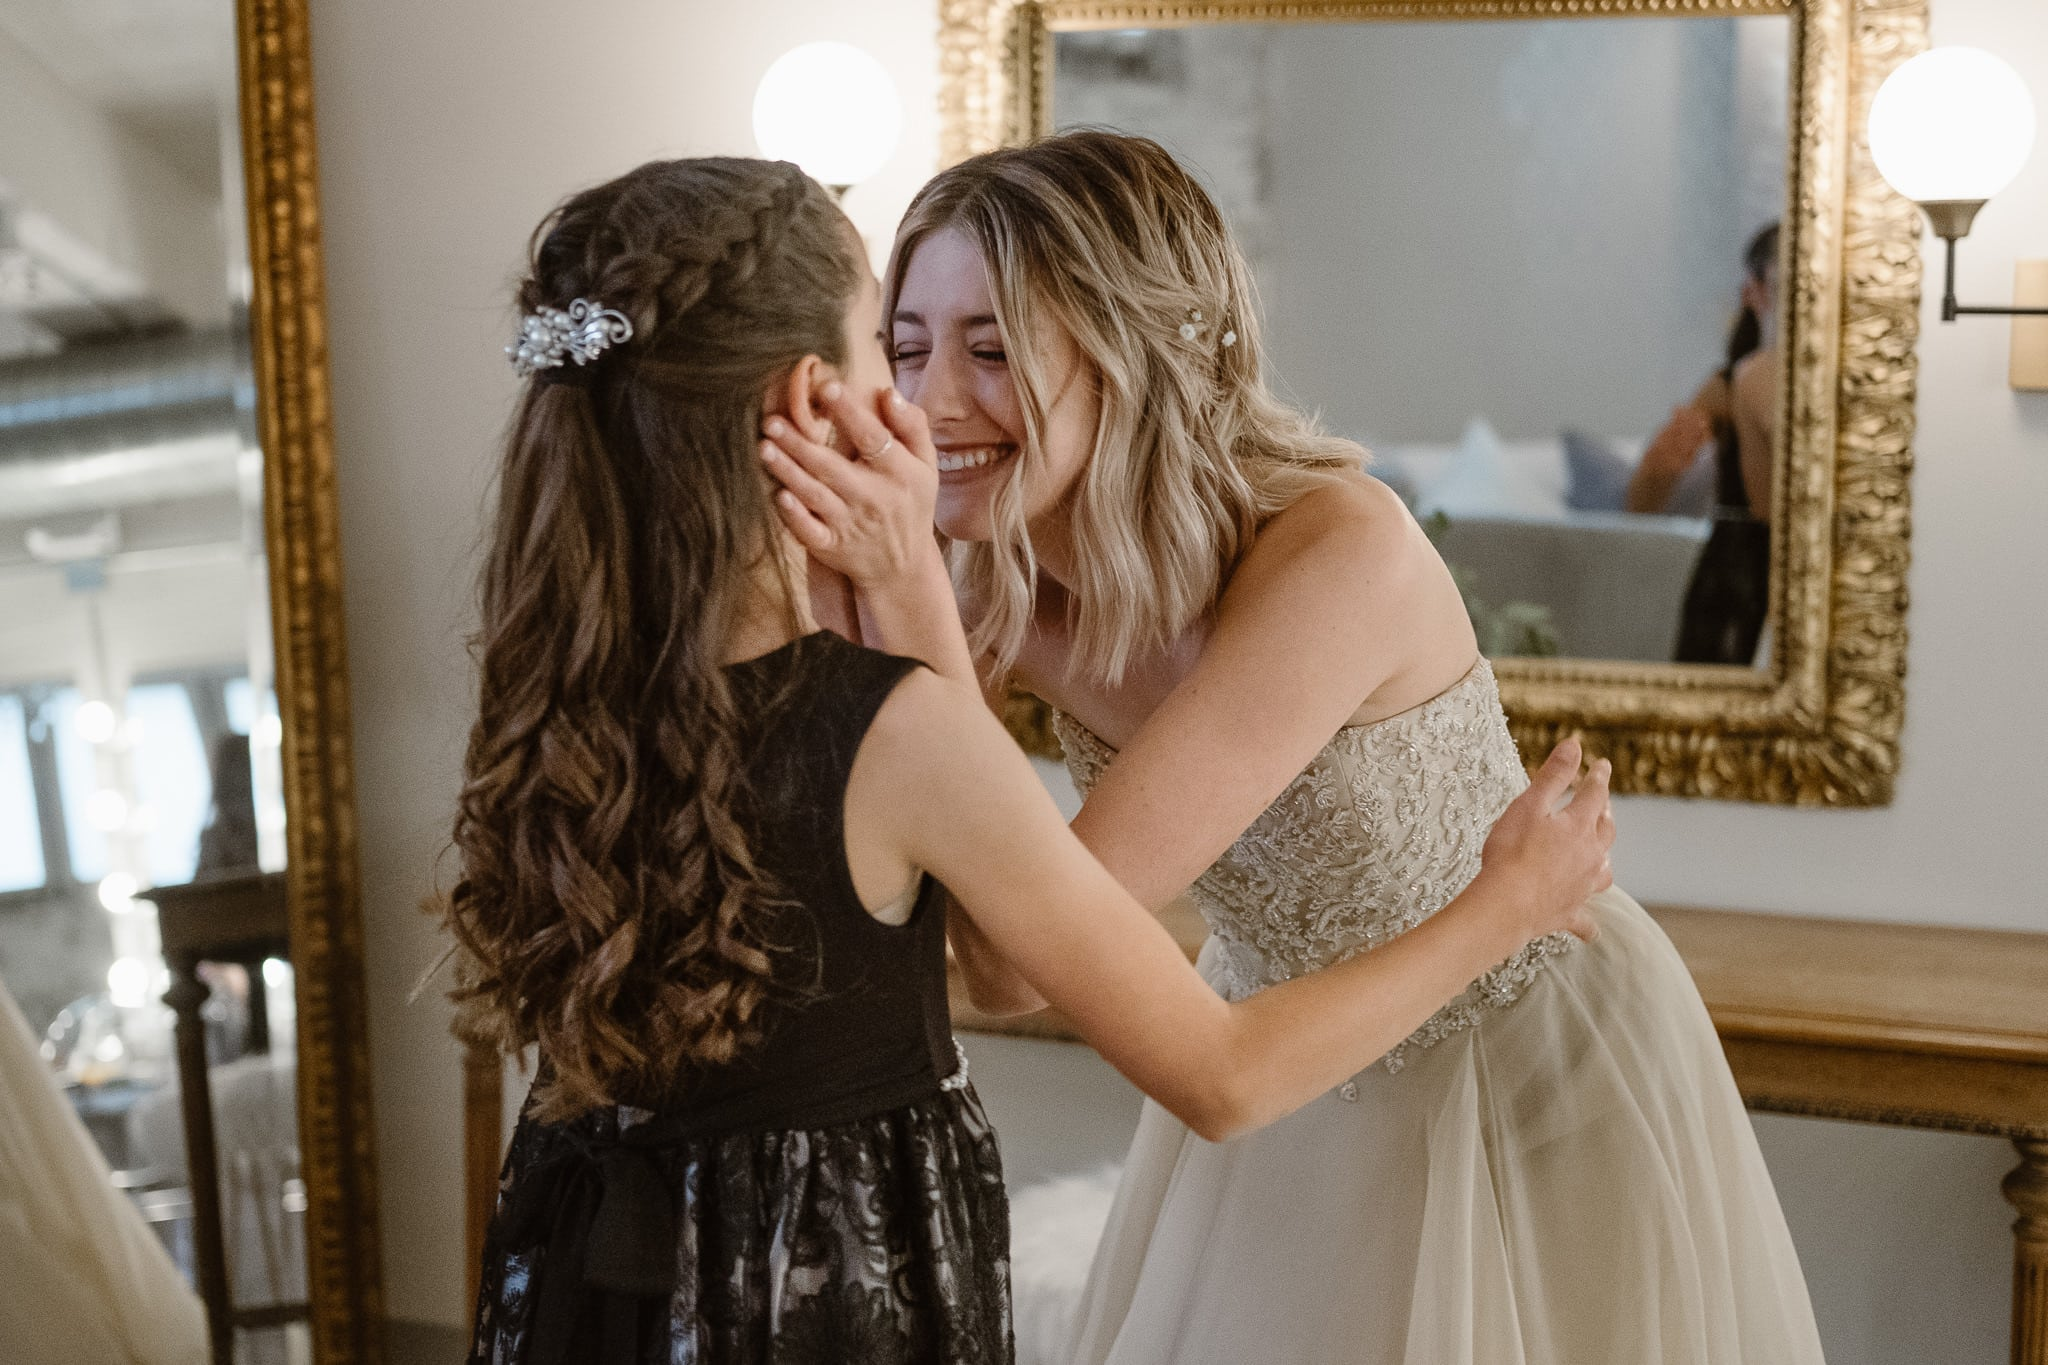 St Vrain Wedding Photographer | Longmont Wedding Photographer | Colorado Winter Wedding Photographer, Colorado industrial chic wedding, bride with her little sister